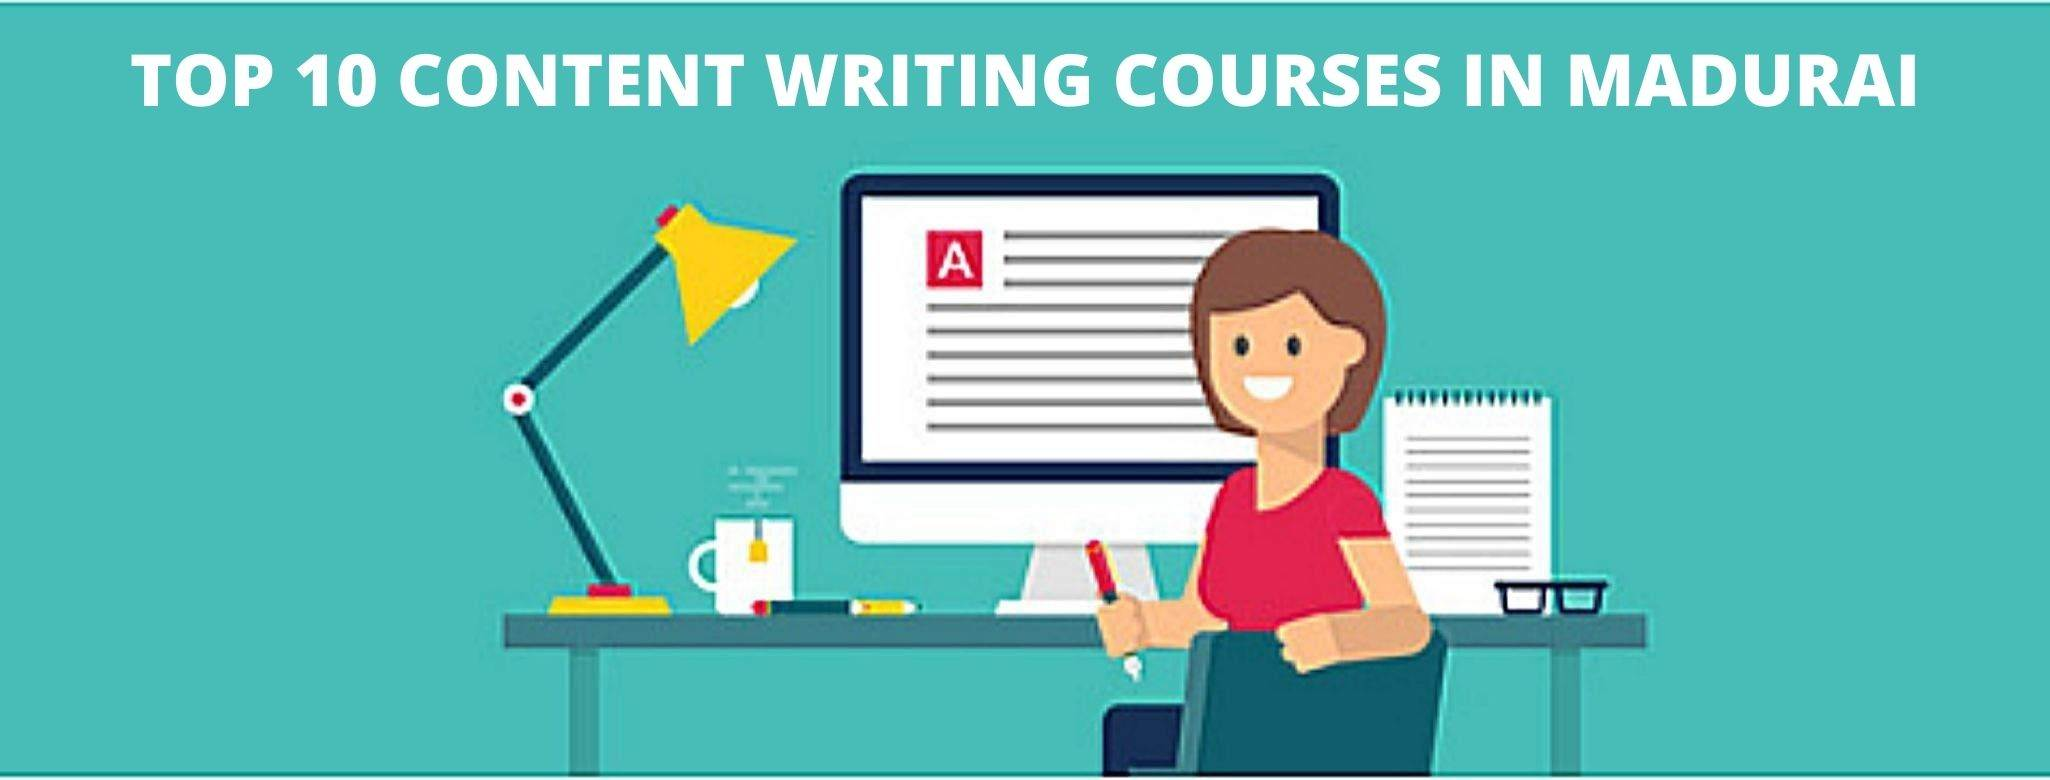 Updated listings about the content writing courses in Madurai